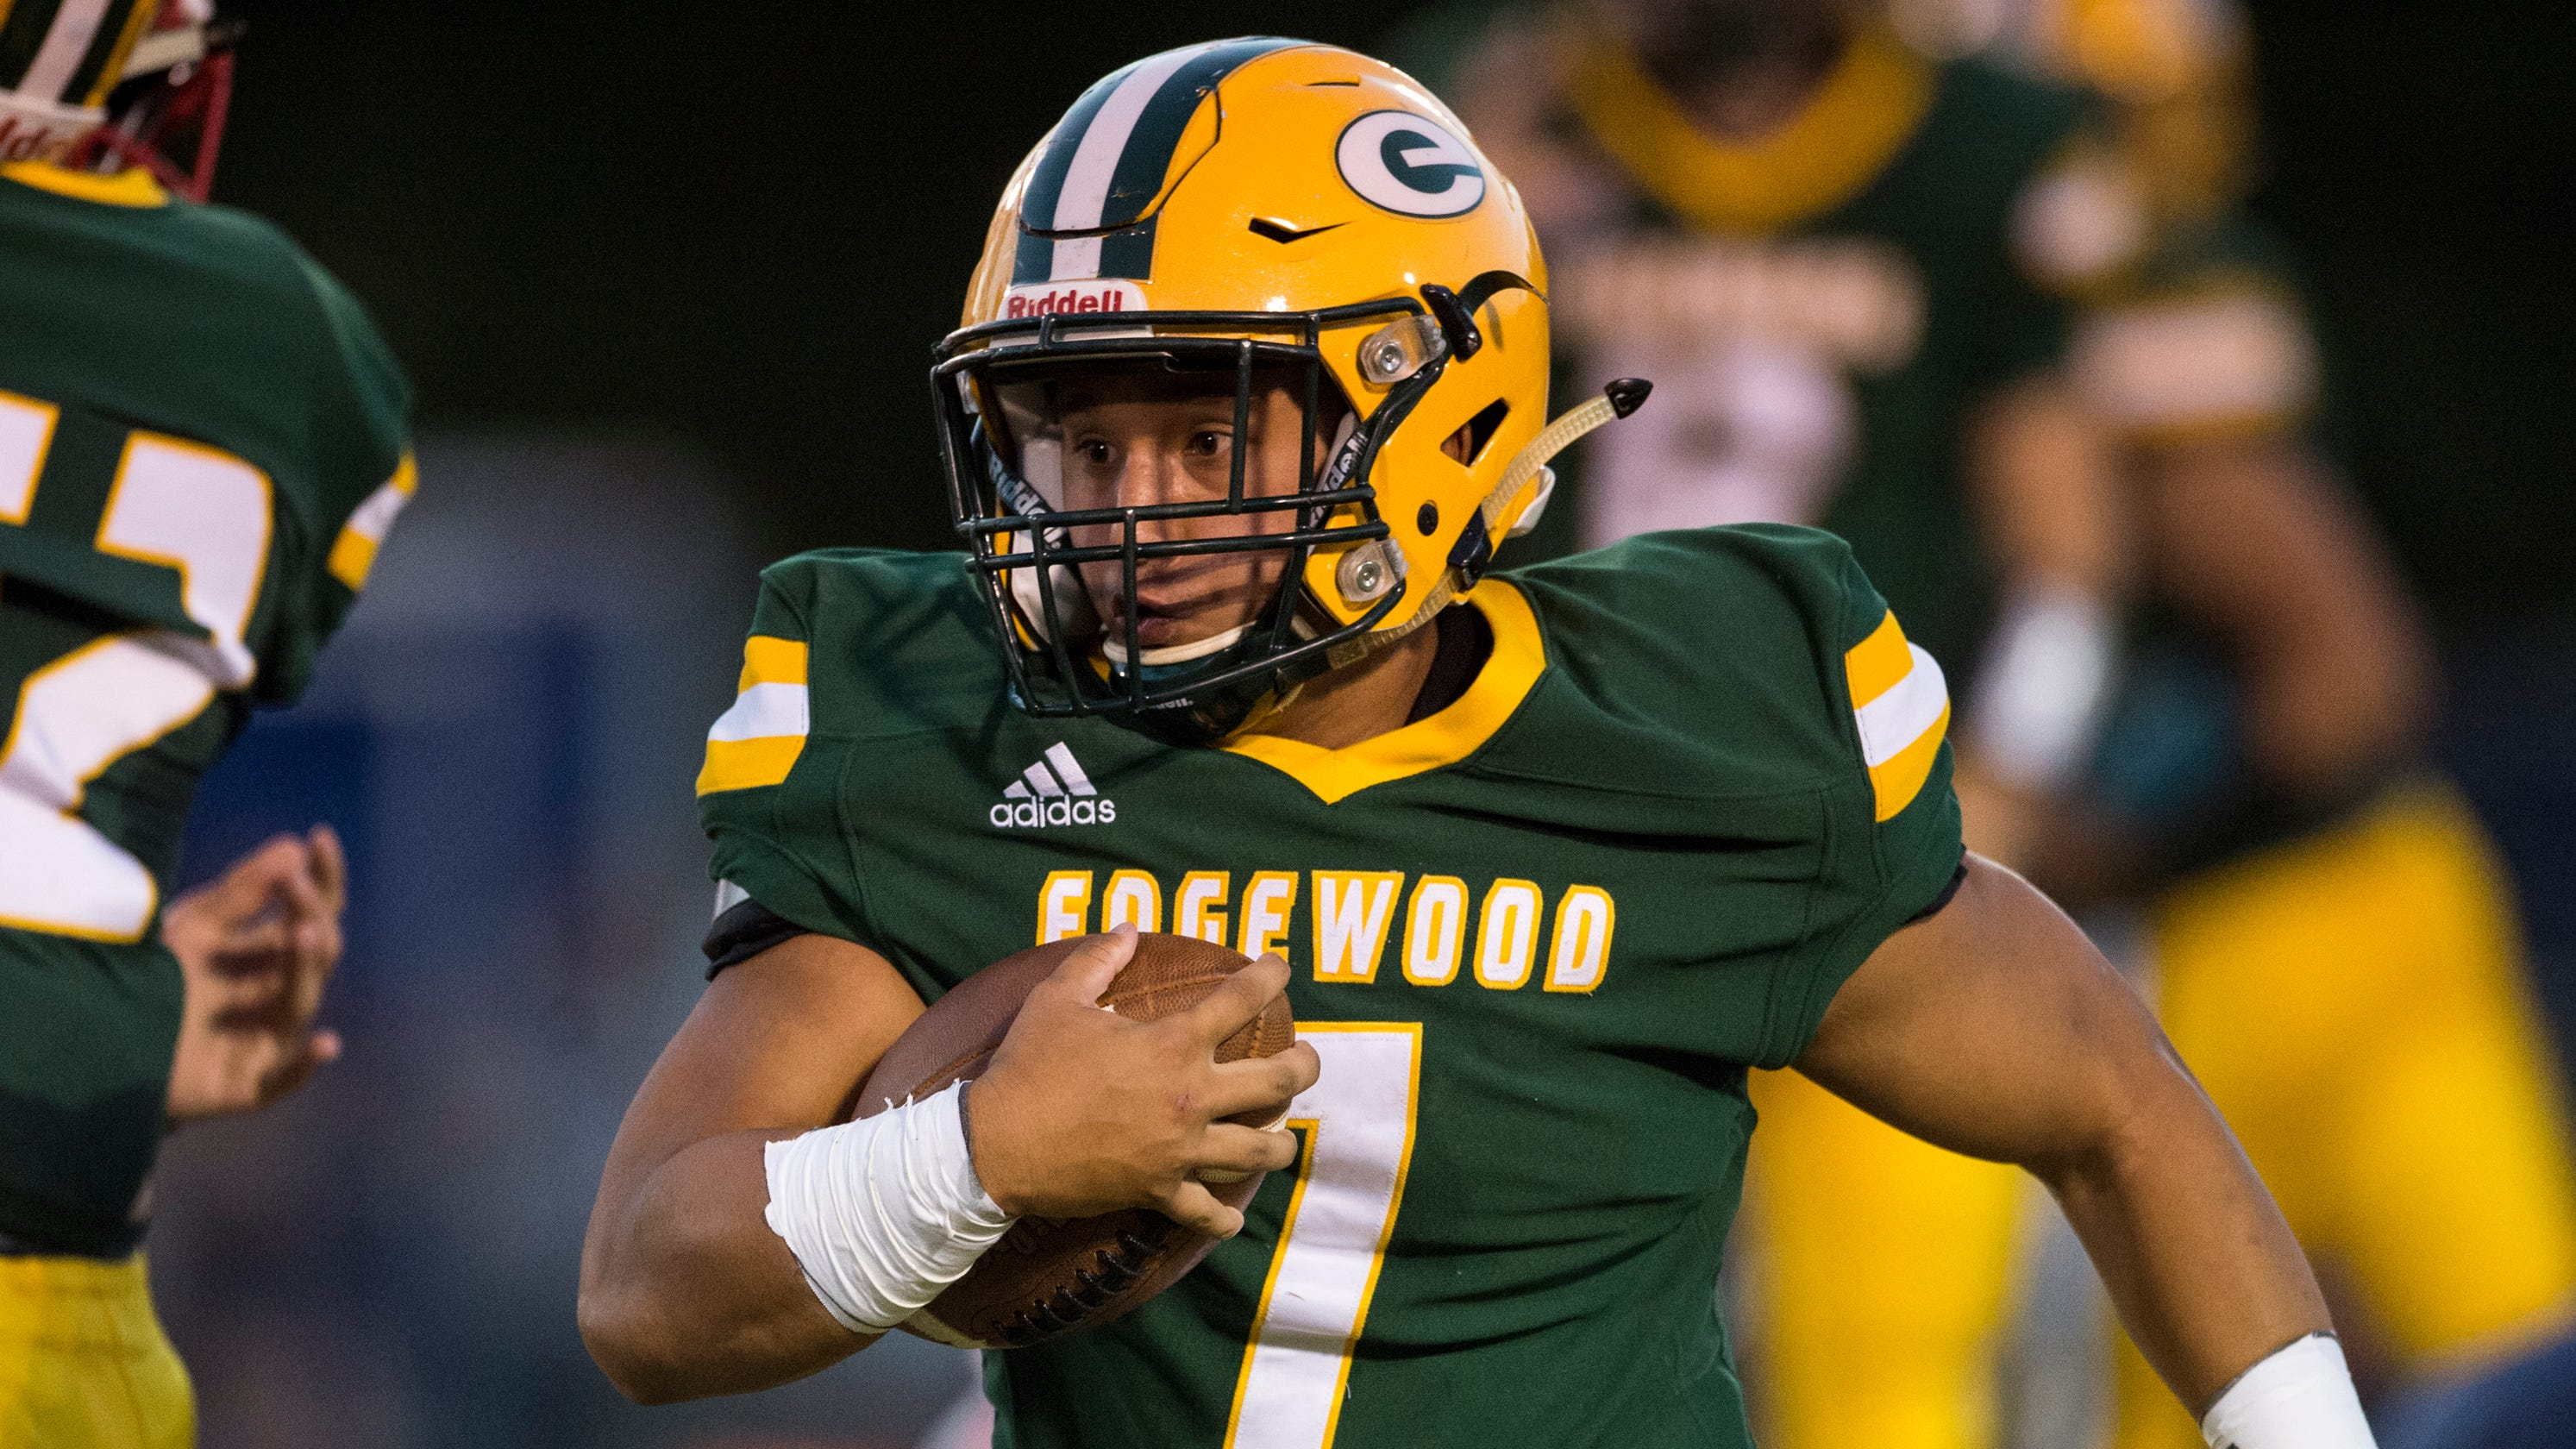 Top AISA football performers: Here's who was the best in Week 3